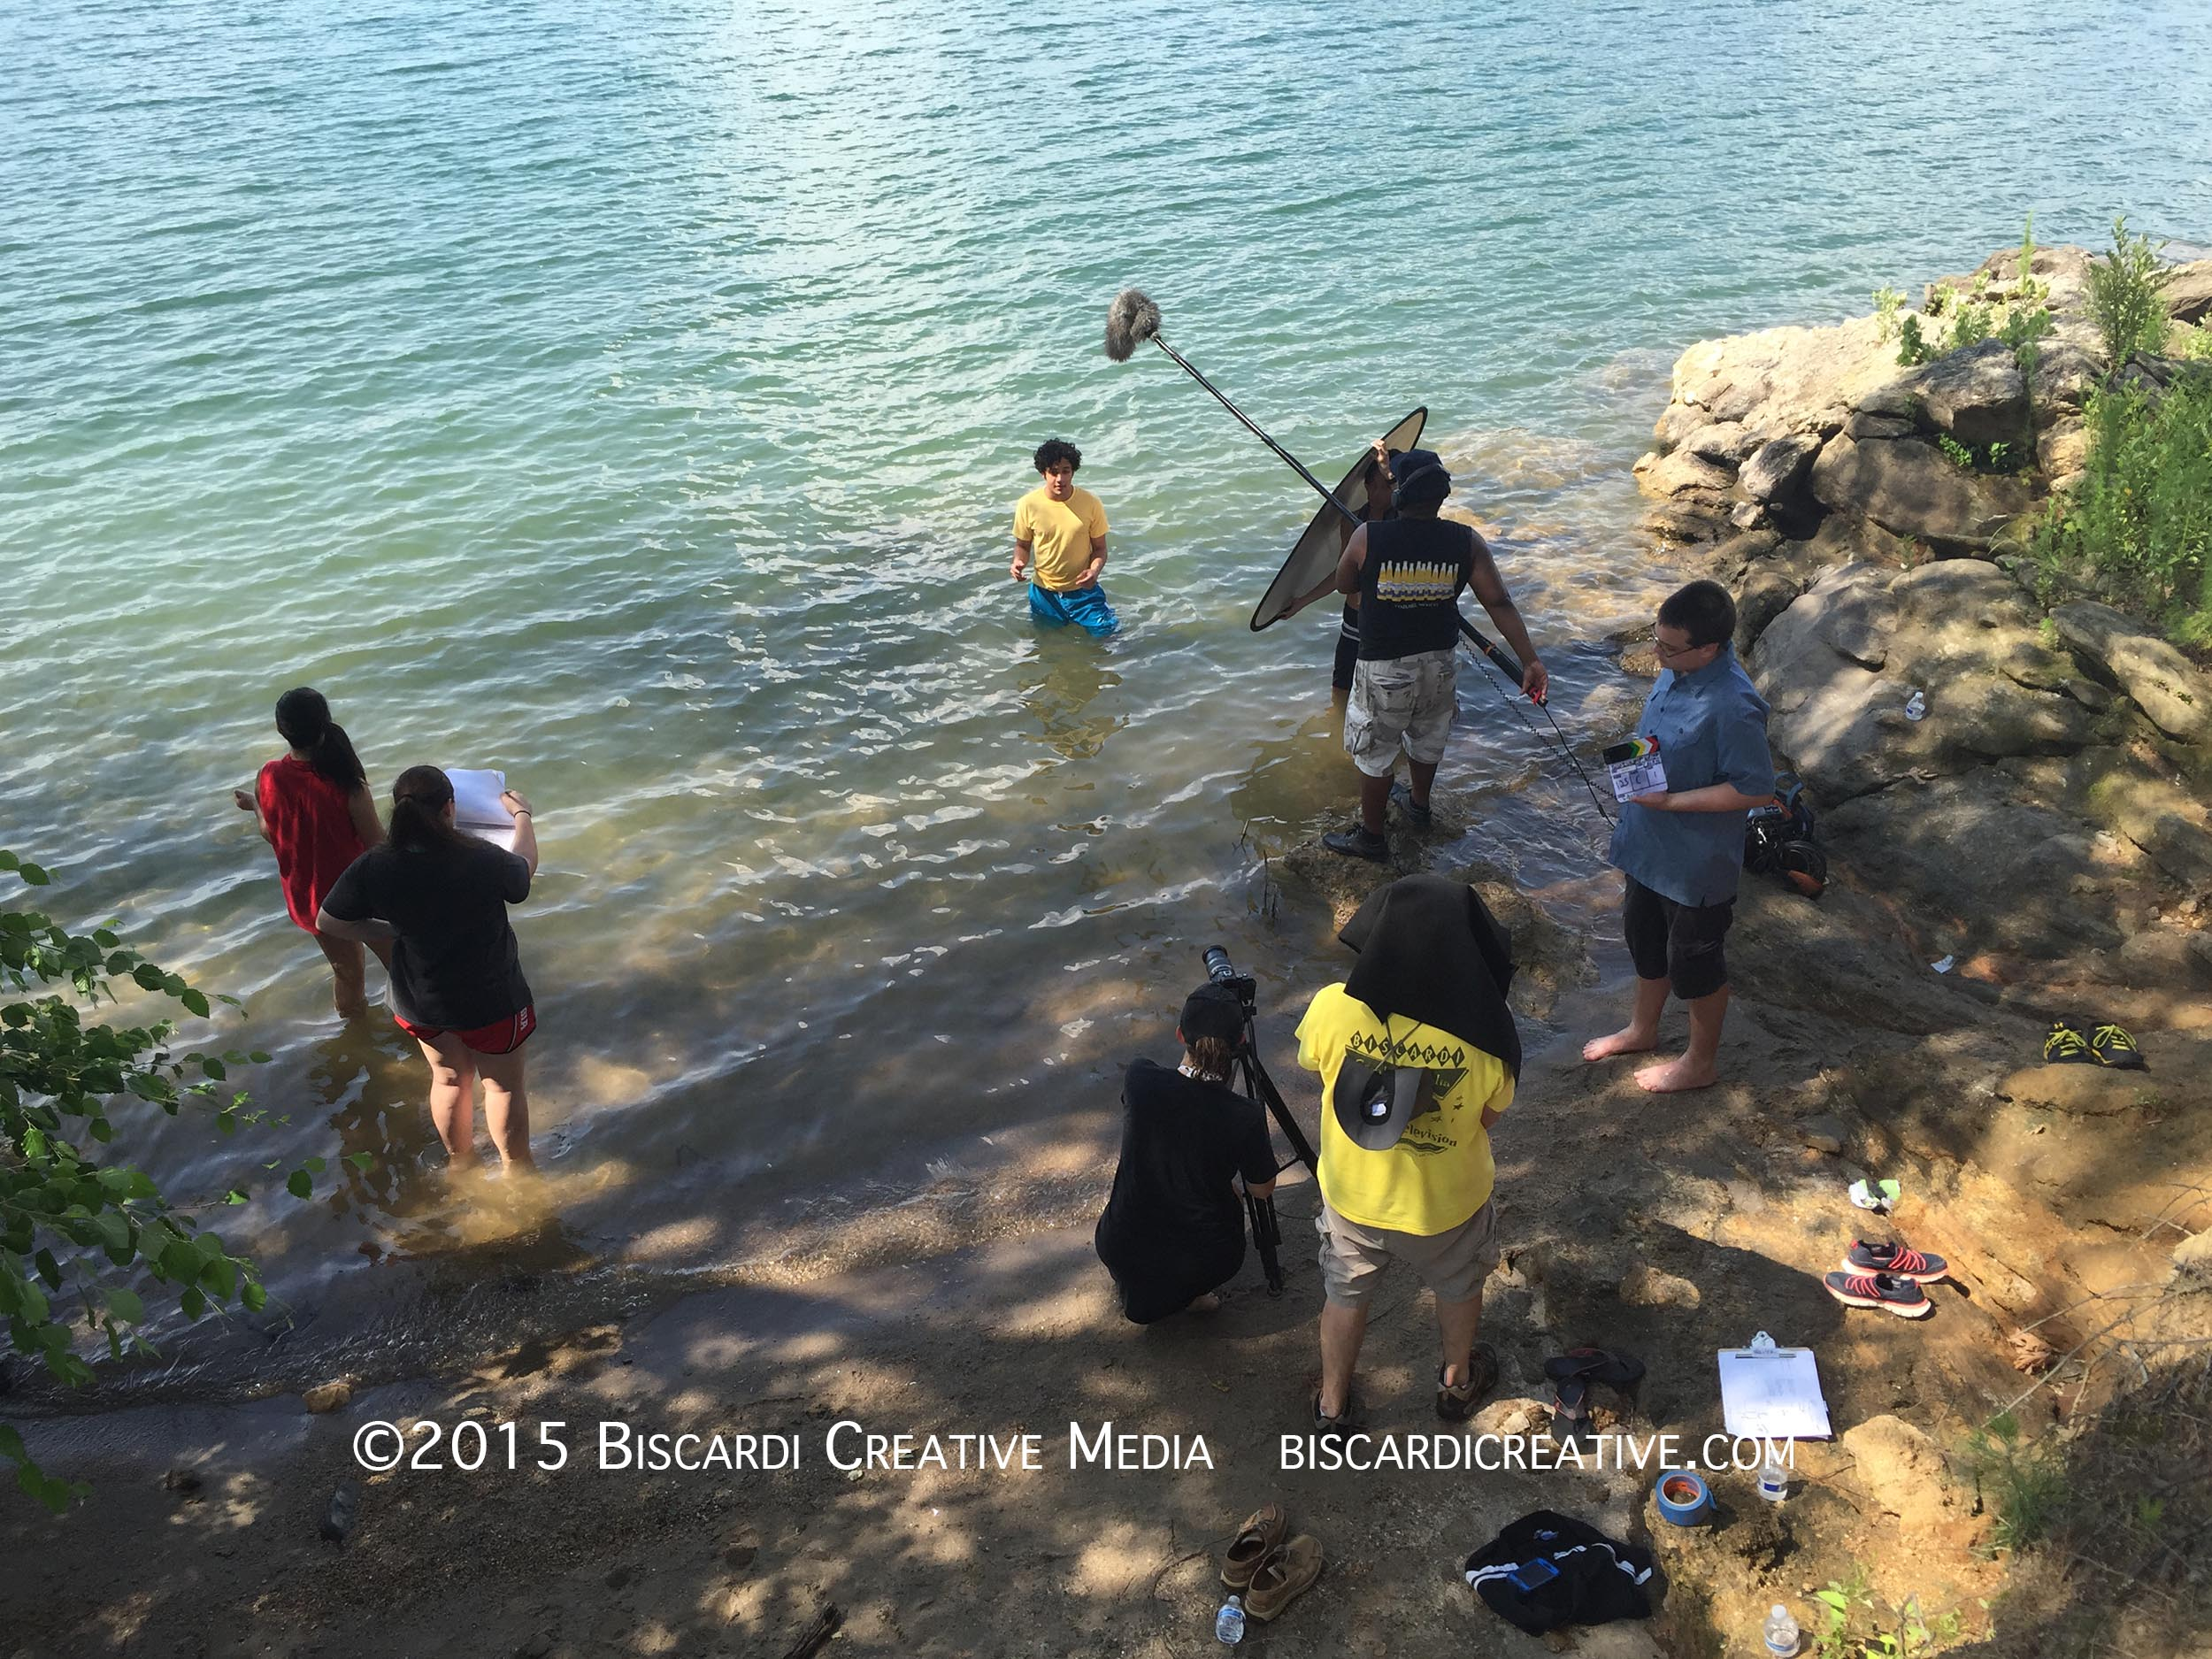 The whole crew in the lake, that's me in the yellow shirt under the hood.